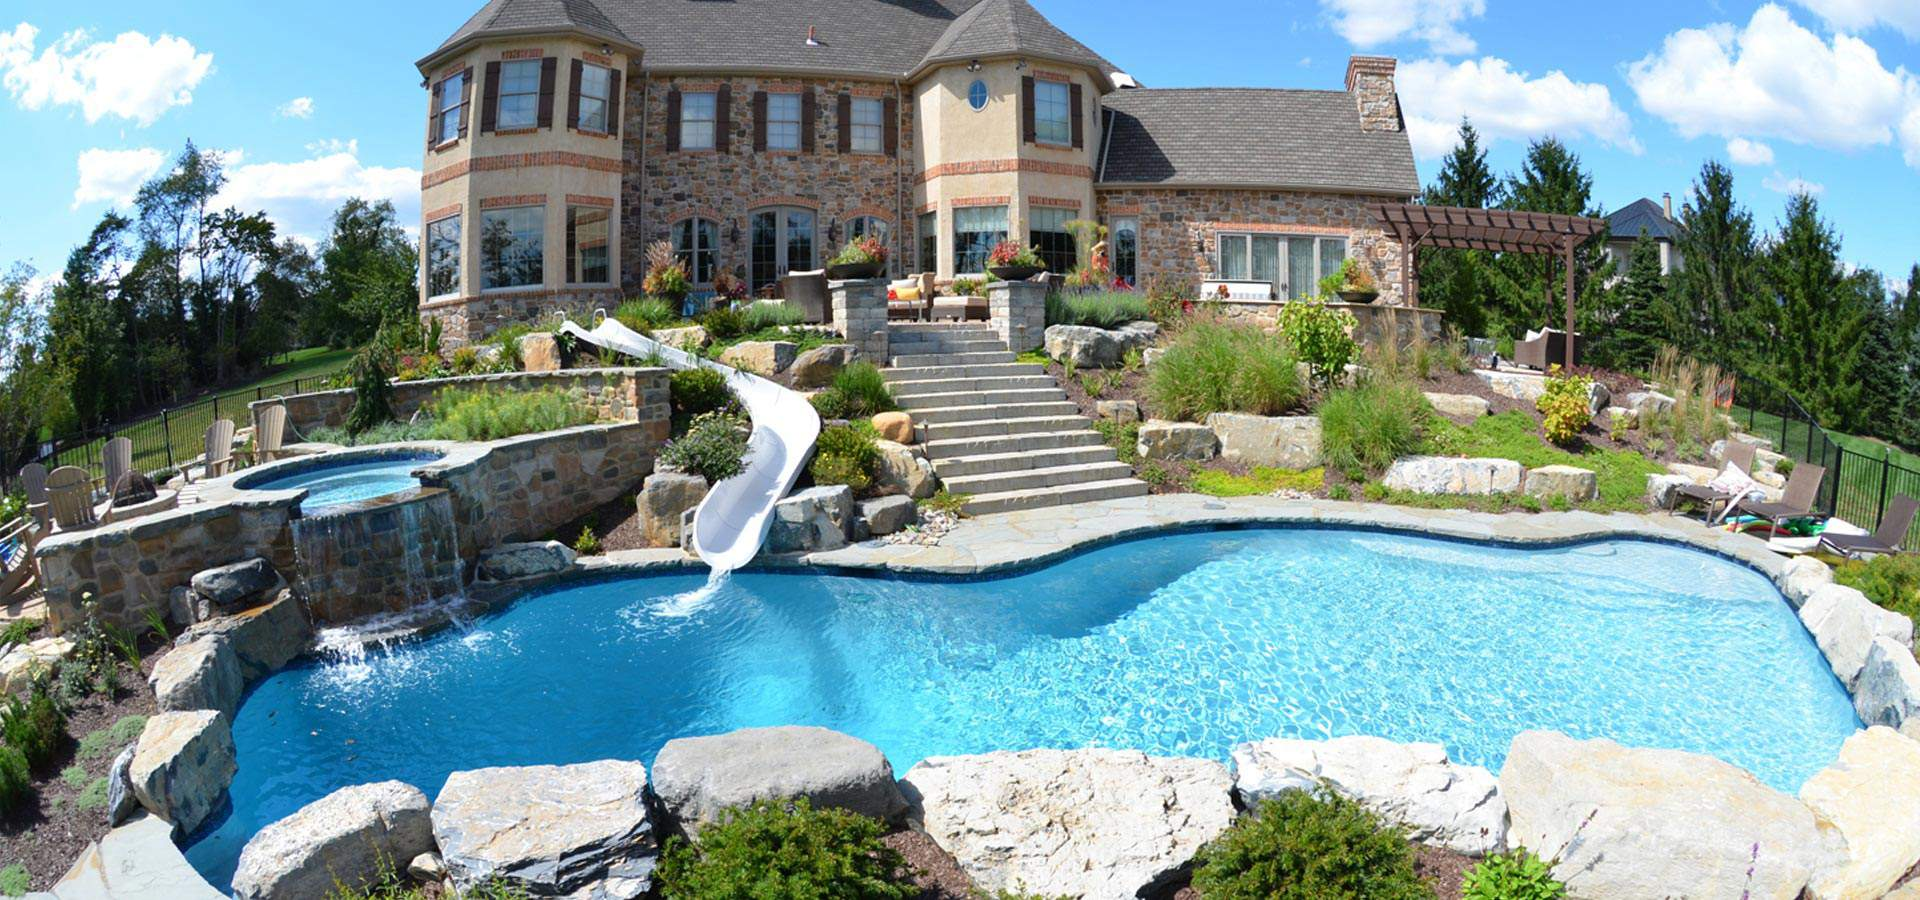 Pools 1 Pool Builder In Lehigh Valley Pa Best Inground Pools